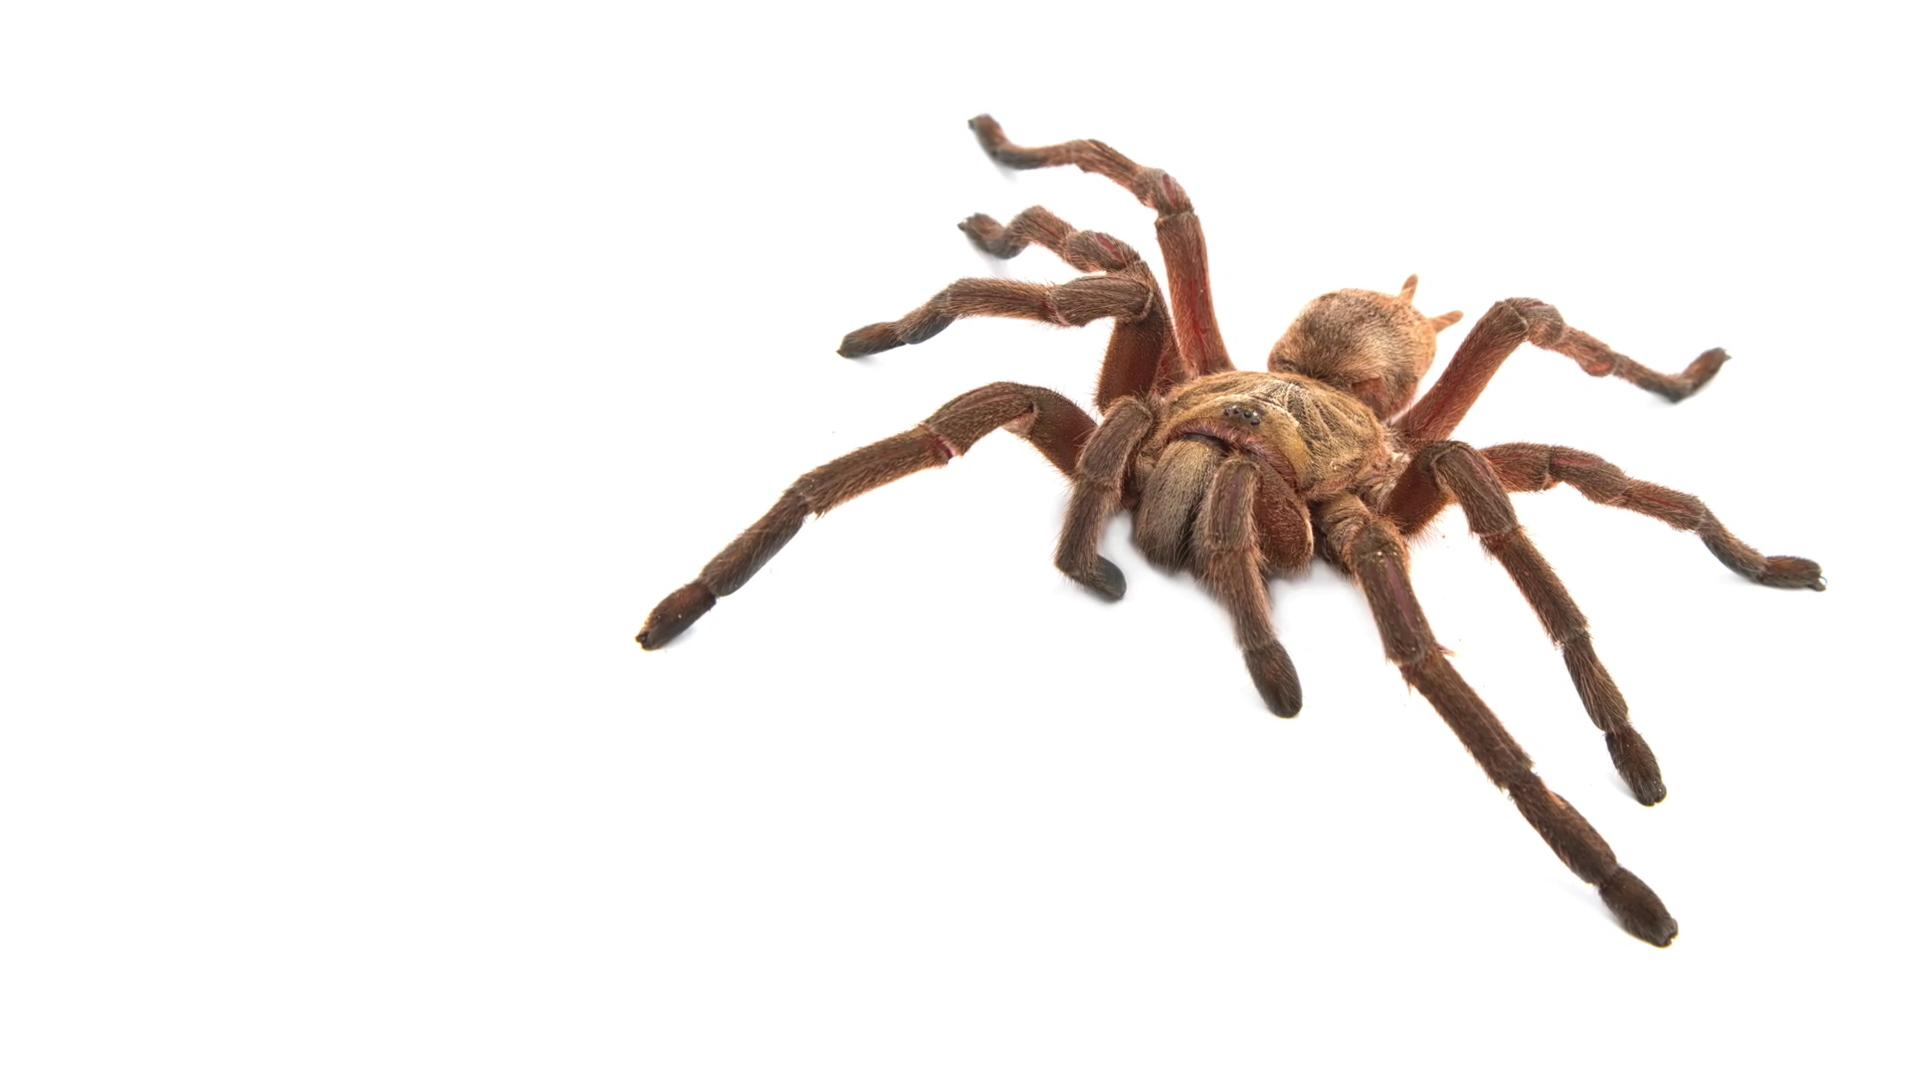 Escaped tarantula causes three hour plane delay